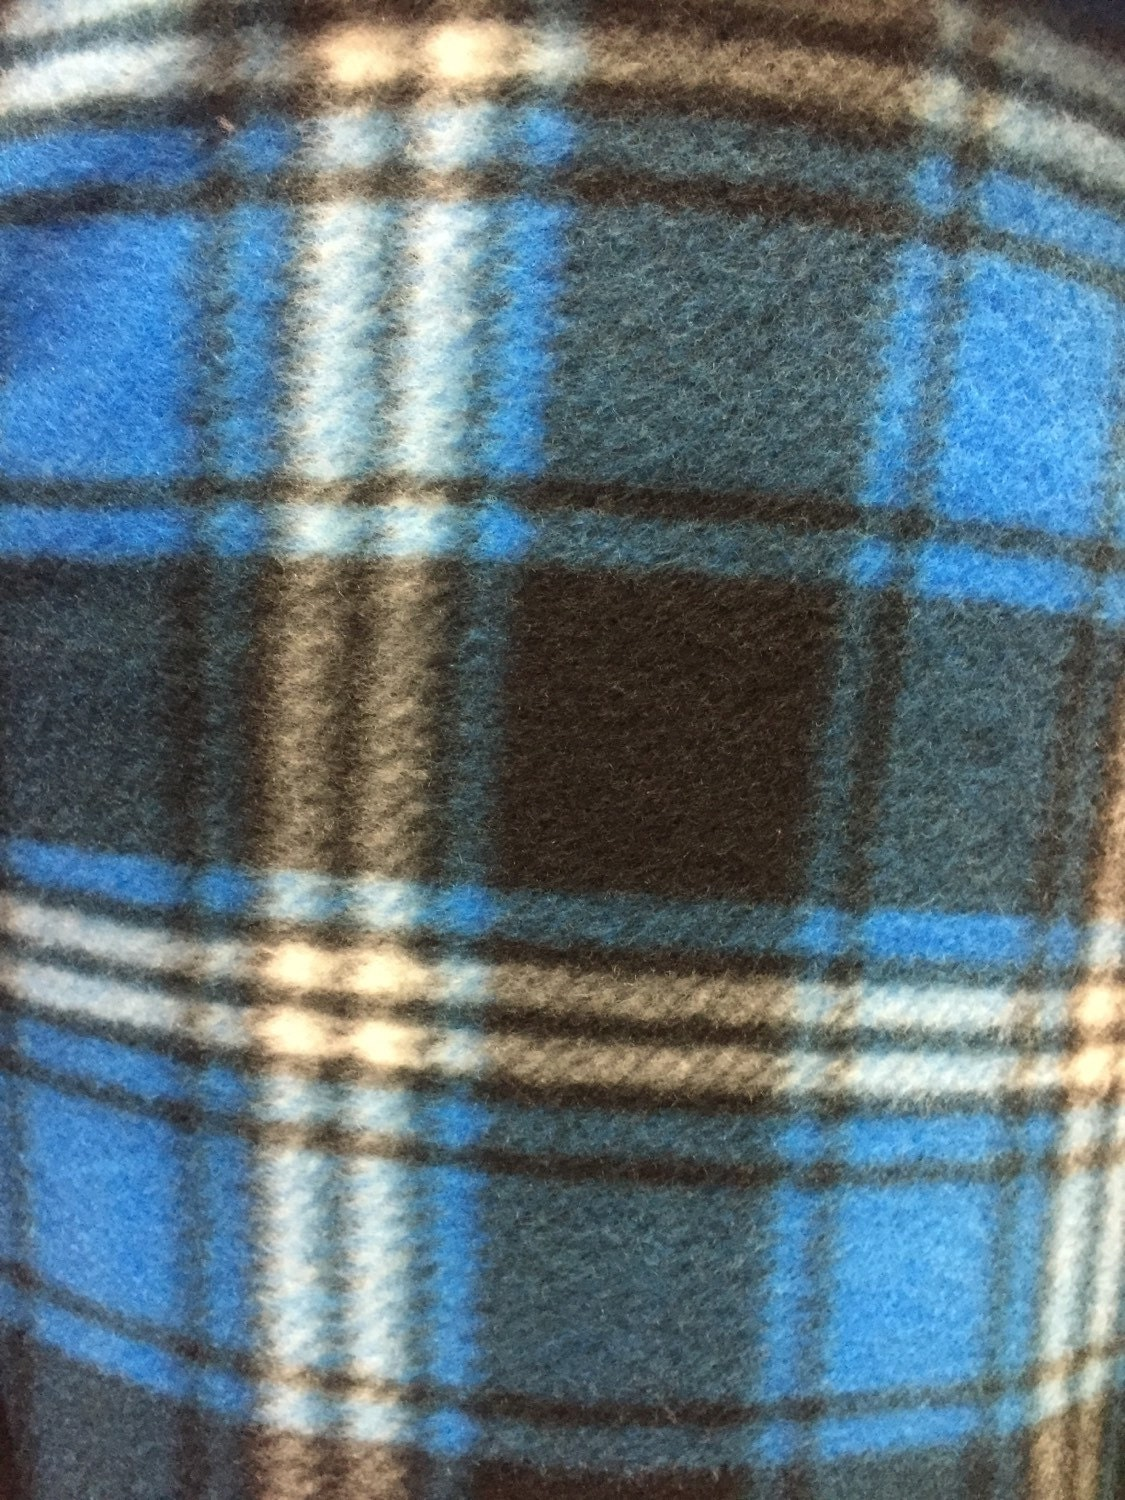 plaid print fleece fabric by the yard from sofiretail on etsy studio. Black Bedroom Furniture Sets. Home Design Ideas